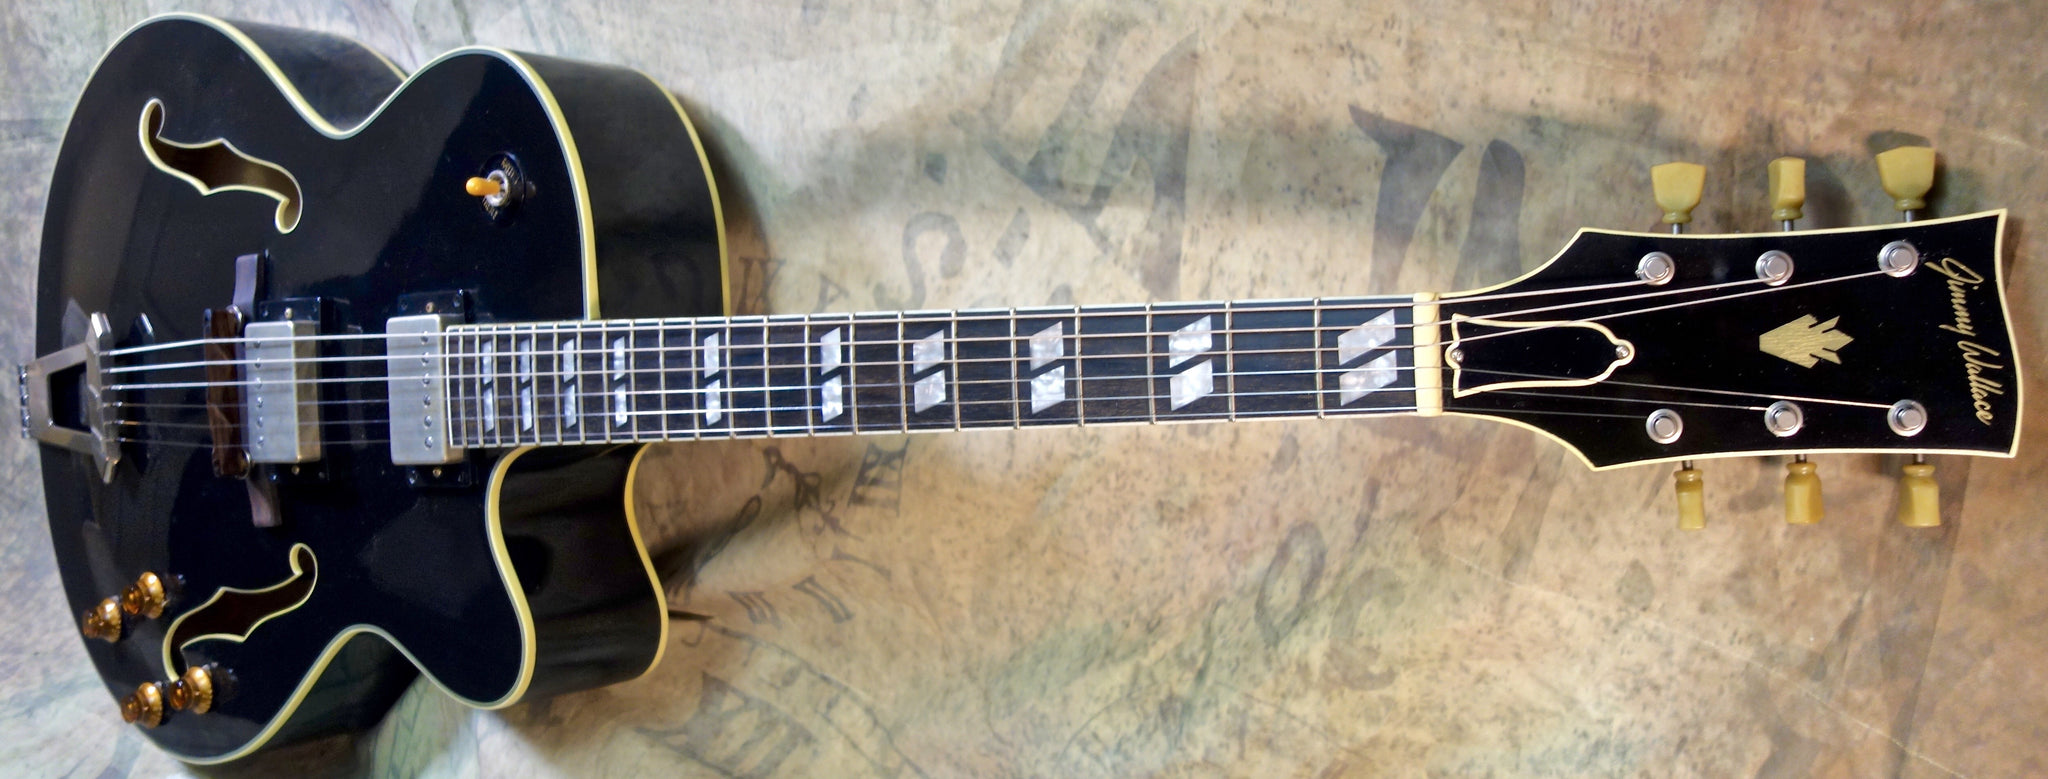 "***SOLD*** Jimmy Wallace JZ-175 ""Big Boy"" in Paladin Black"